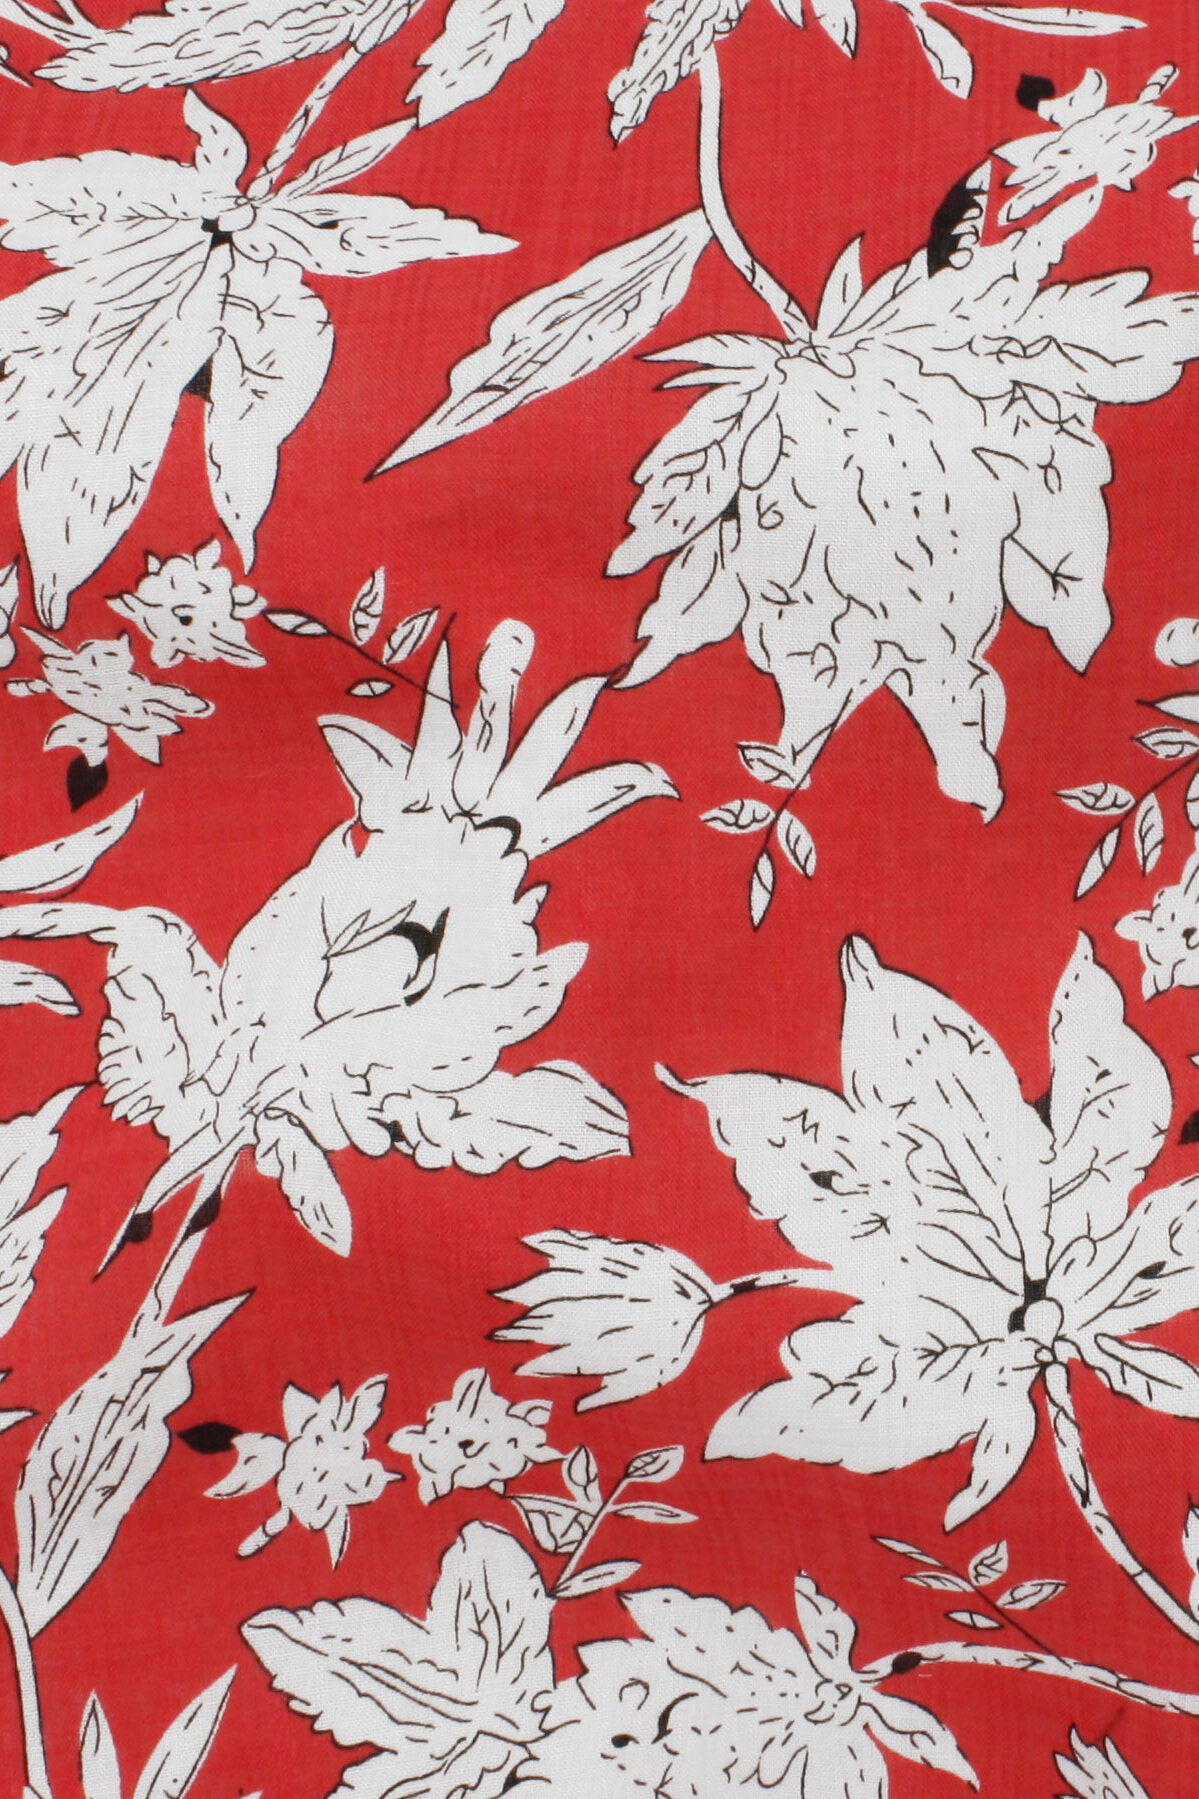 Verona Voile Print Red / White